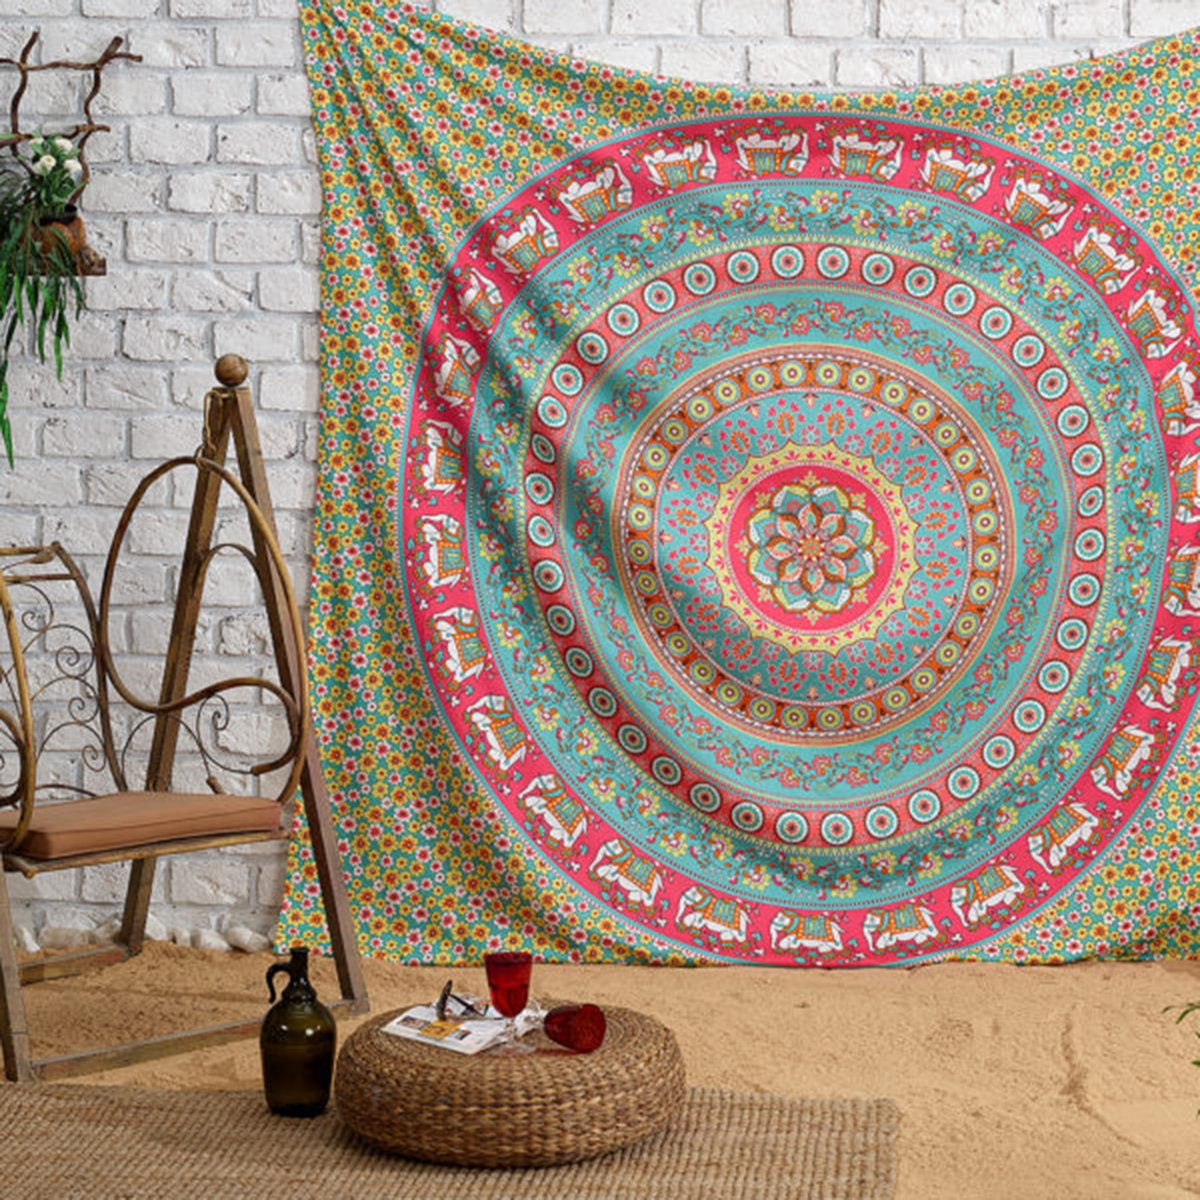 Shukqueen Tapestry, Elephant Tapestry Wall Hanging Hippie Bohemian Mandala Wall Art Dorm Decor 51H x 60W